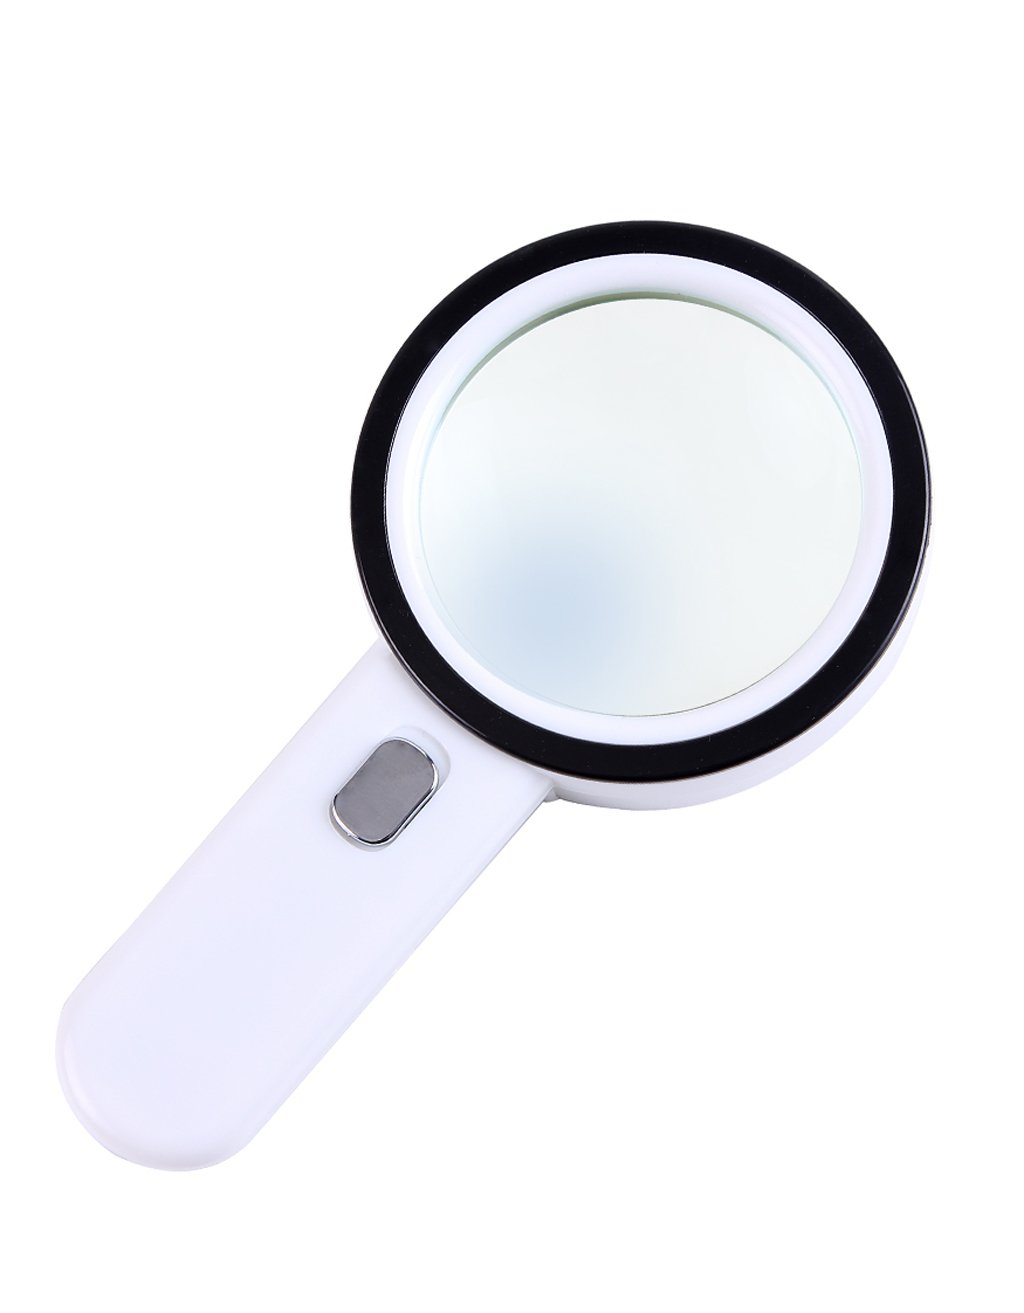 ZENGAI Magnifiers High-definition Optical With Lamp Reading 30 Times The Large Double-lens 100MM Antique Hand-held Gift Box Magnifying Glass